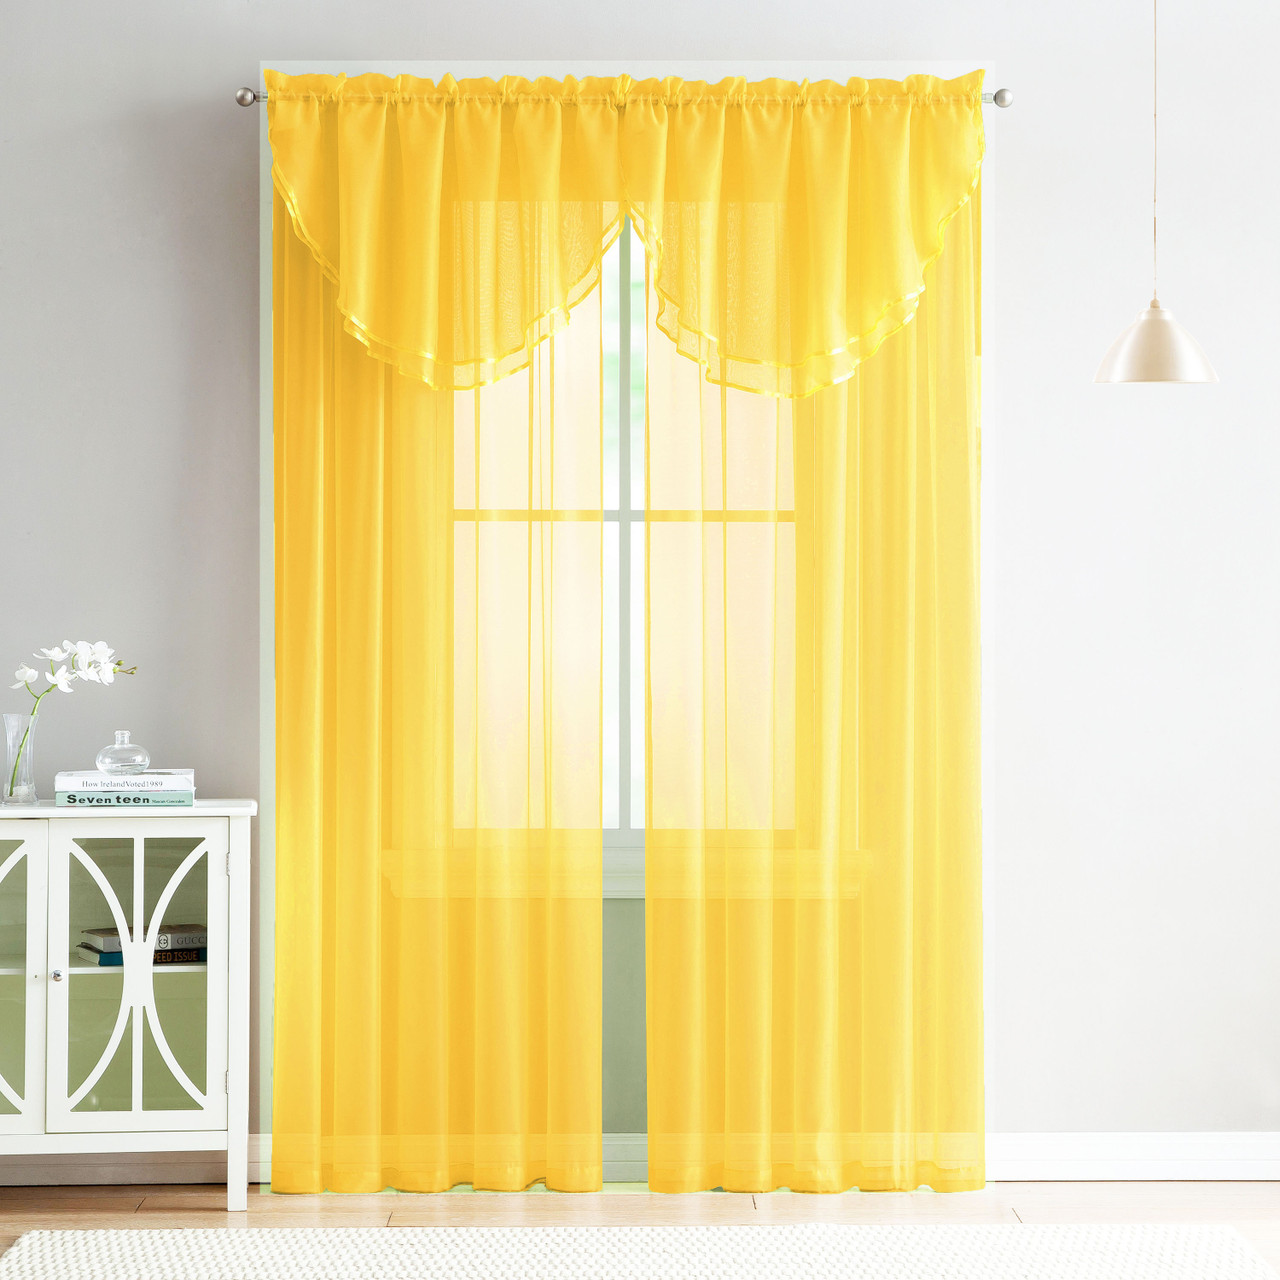 4 Piece Sheer Window Curtain Set For Living Room Dining Room Bay Windows 2 Voile Valance Curtains And 2 Panels 84 In Long Yellow My Infinity Store